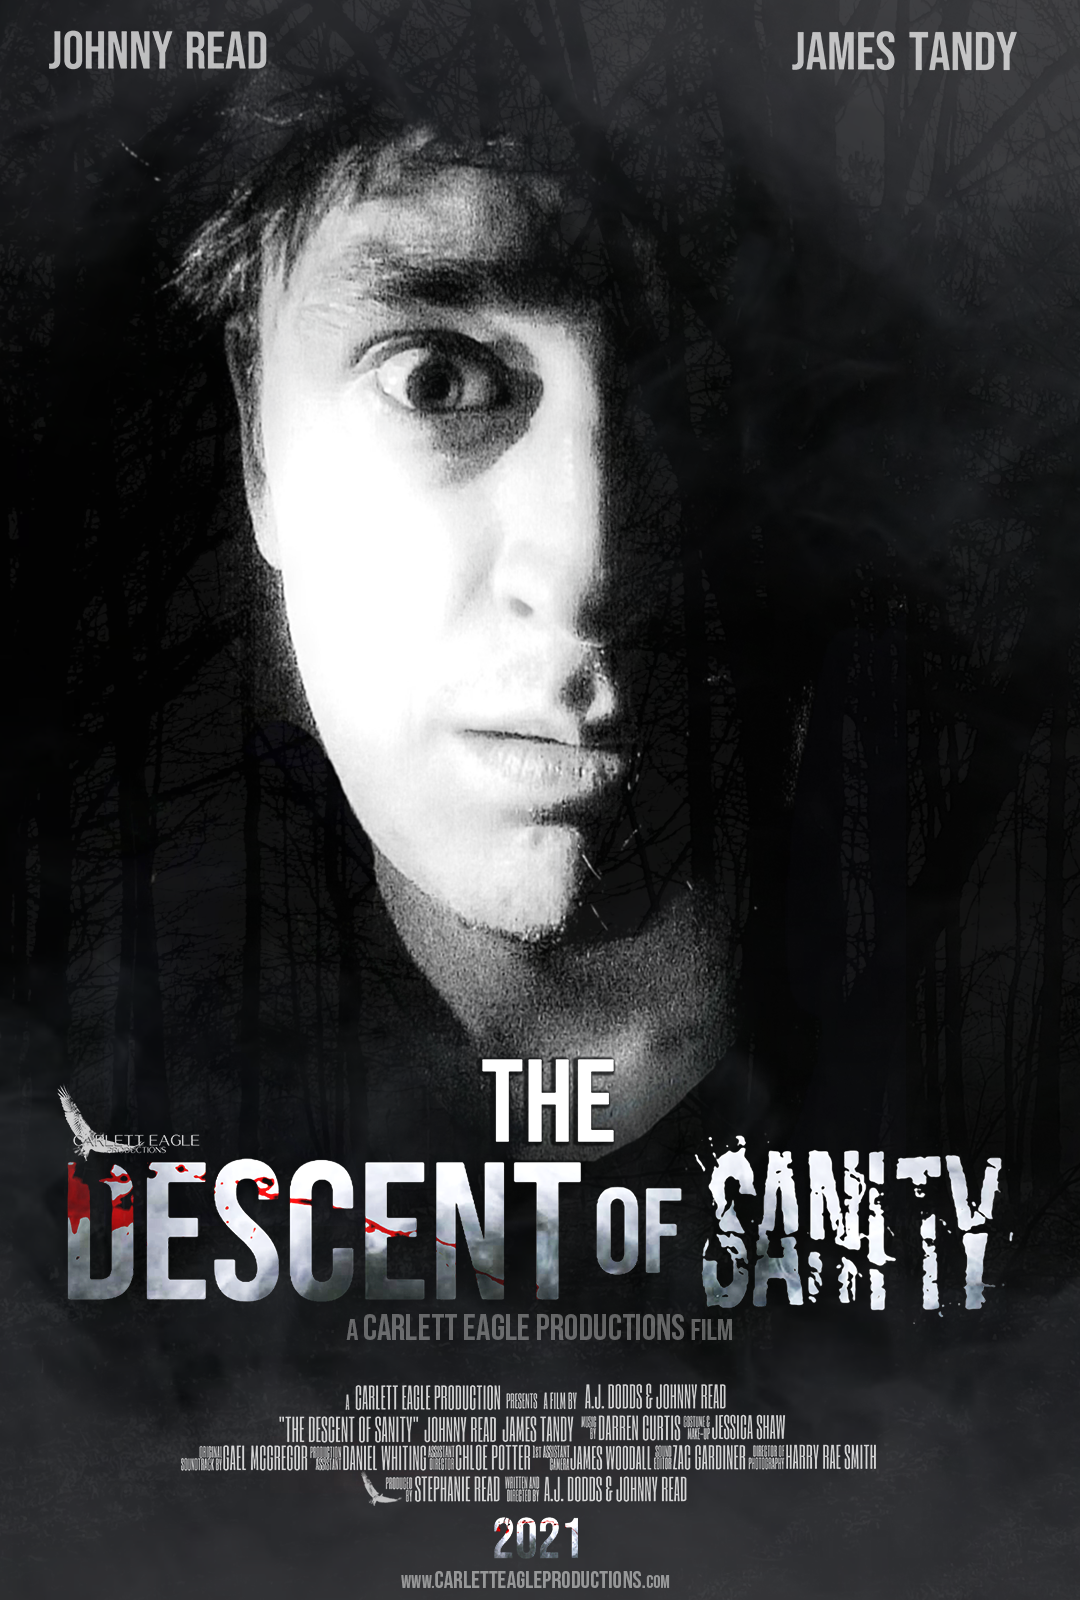 The Descent of Sanity Poster - James Tandy as Peter Thompson